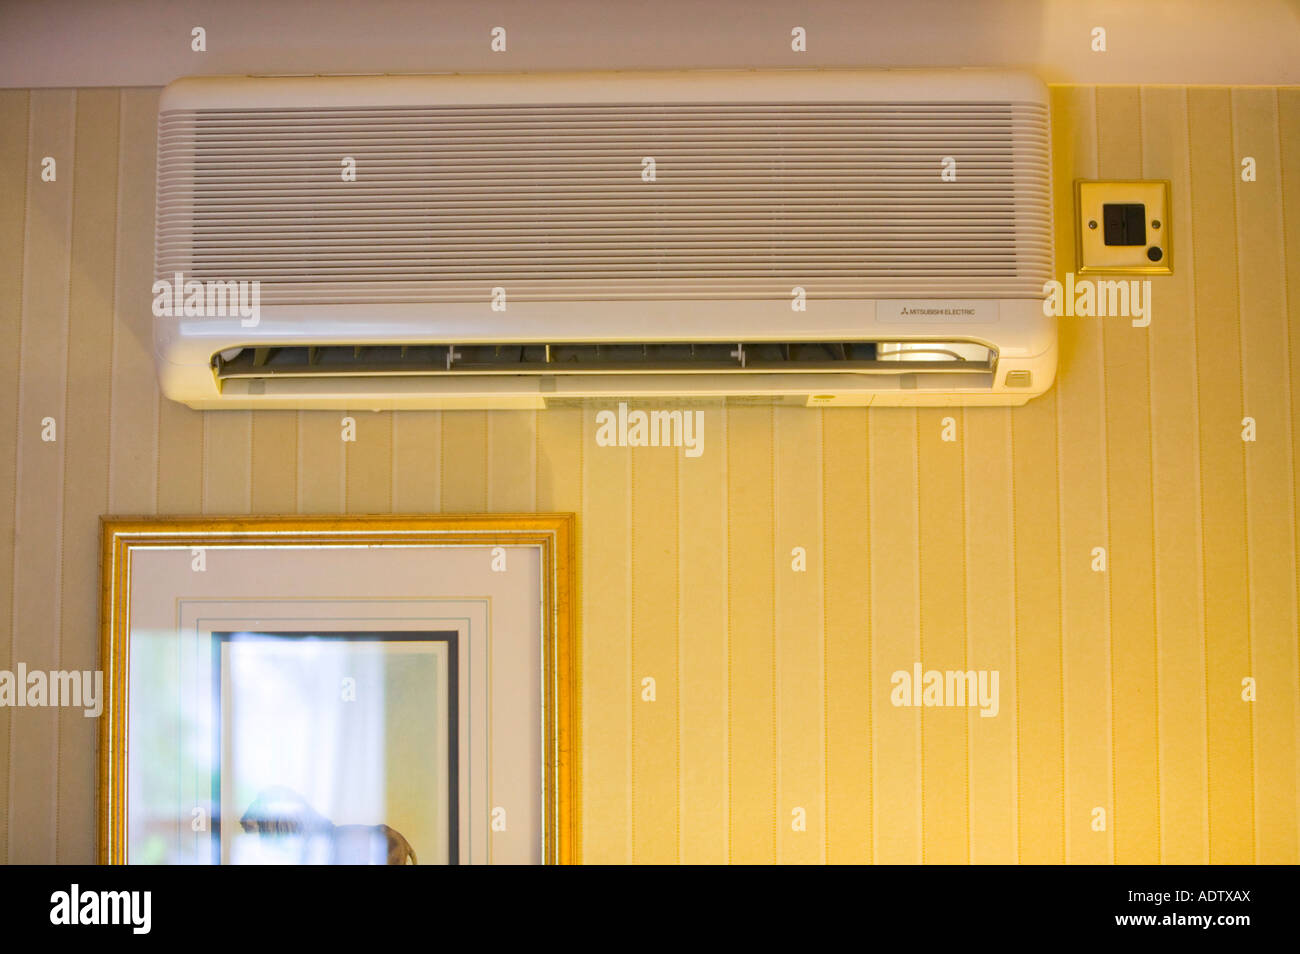 air conditioning in a hotel bedroom london uk stock photo, royalty